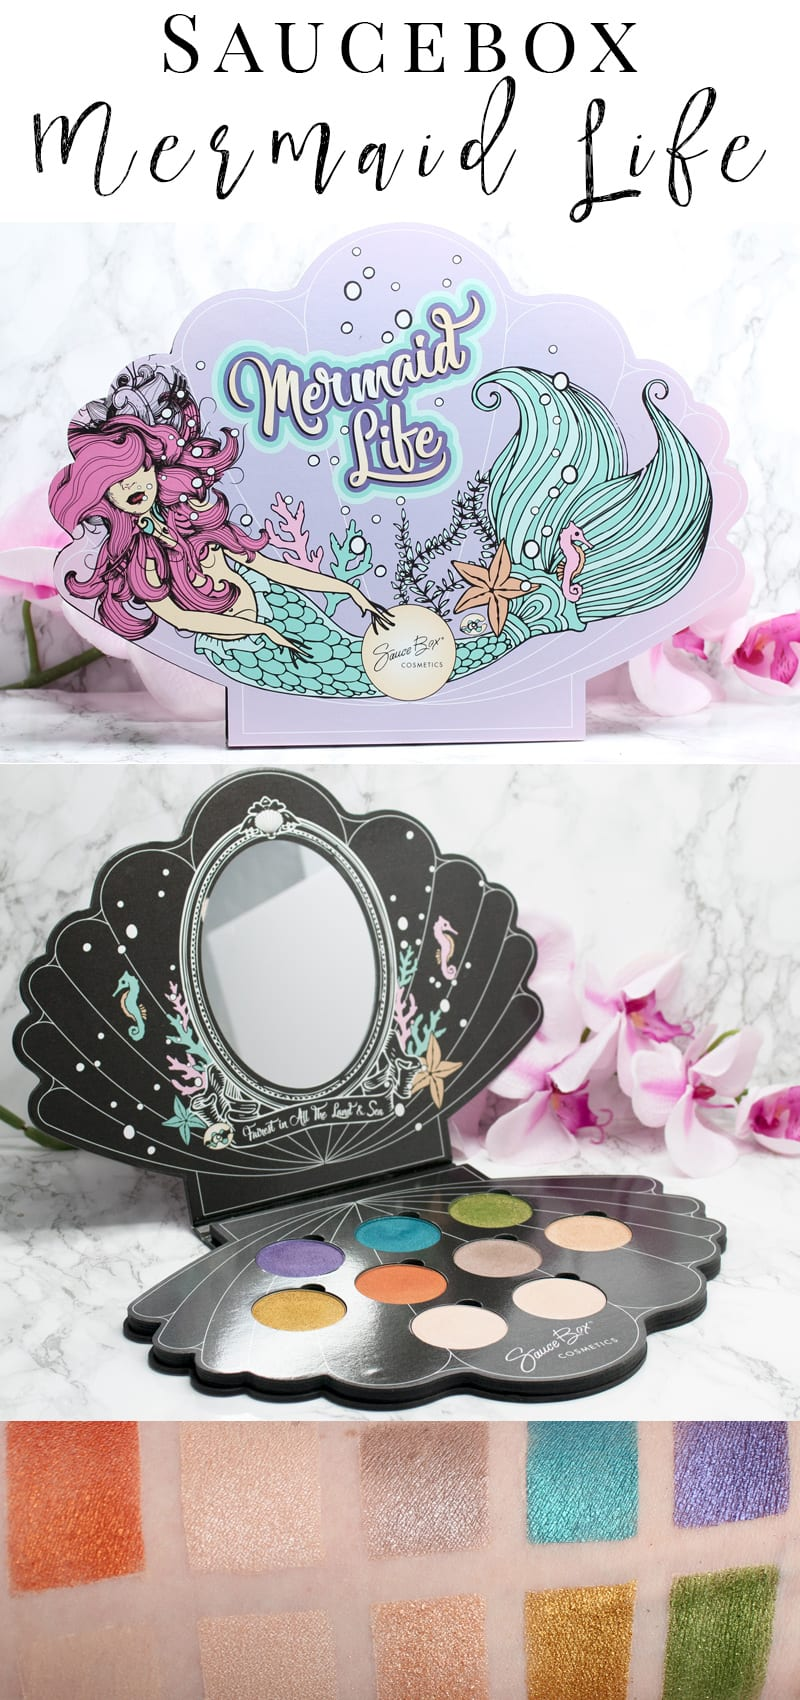 Saucebox Mermaid Life Palette. The best eyeshadow palette with 9 stunning eyeshadows! It has duochromes and foil finish colors. It's 100% vegan, proudly made in the USA and eco-friendly.